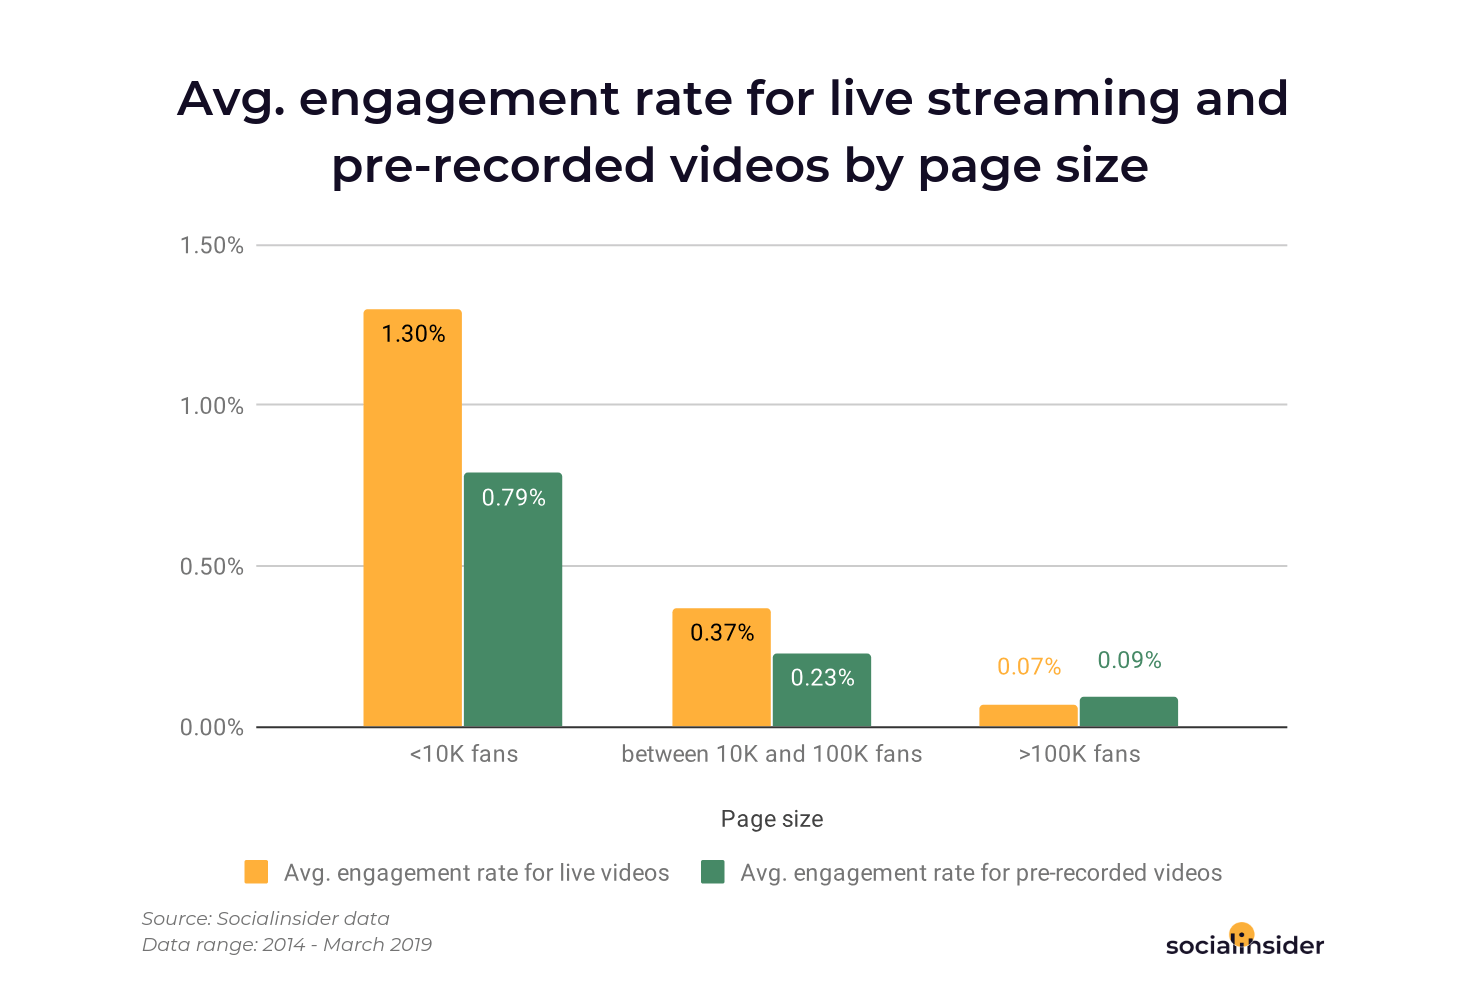 In this photo you can see the avg. eng. rate for live streaming and pre-recorded videos for all page sizes